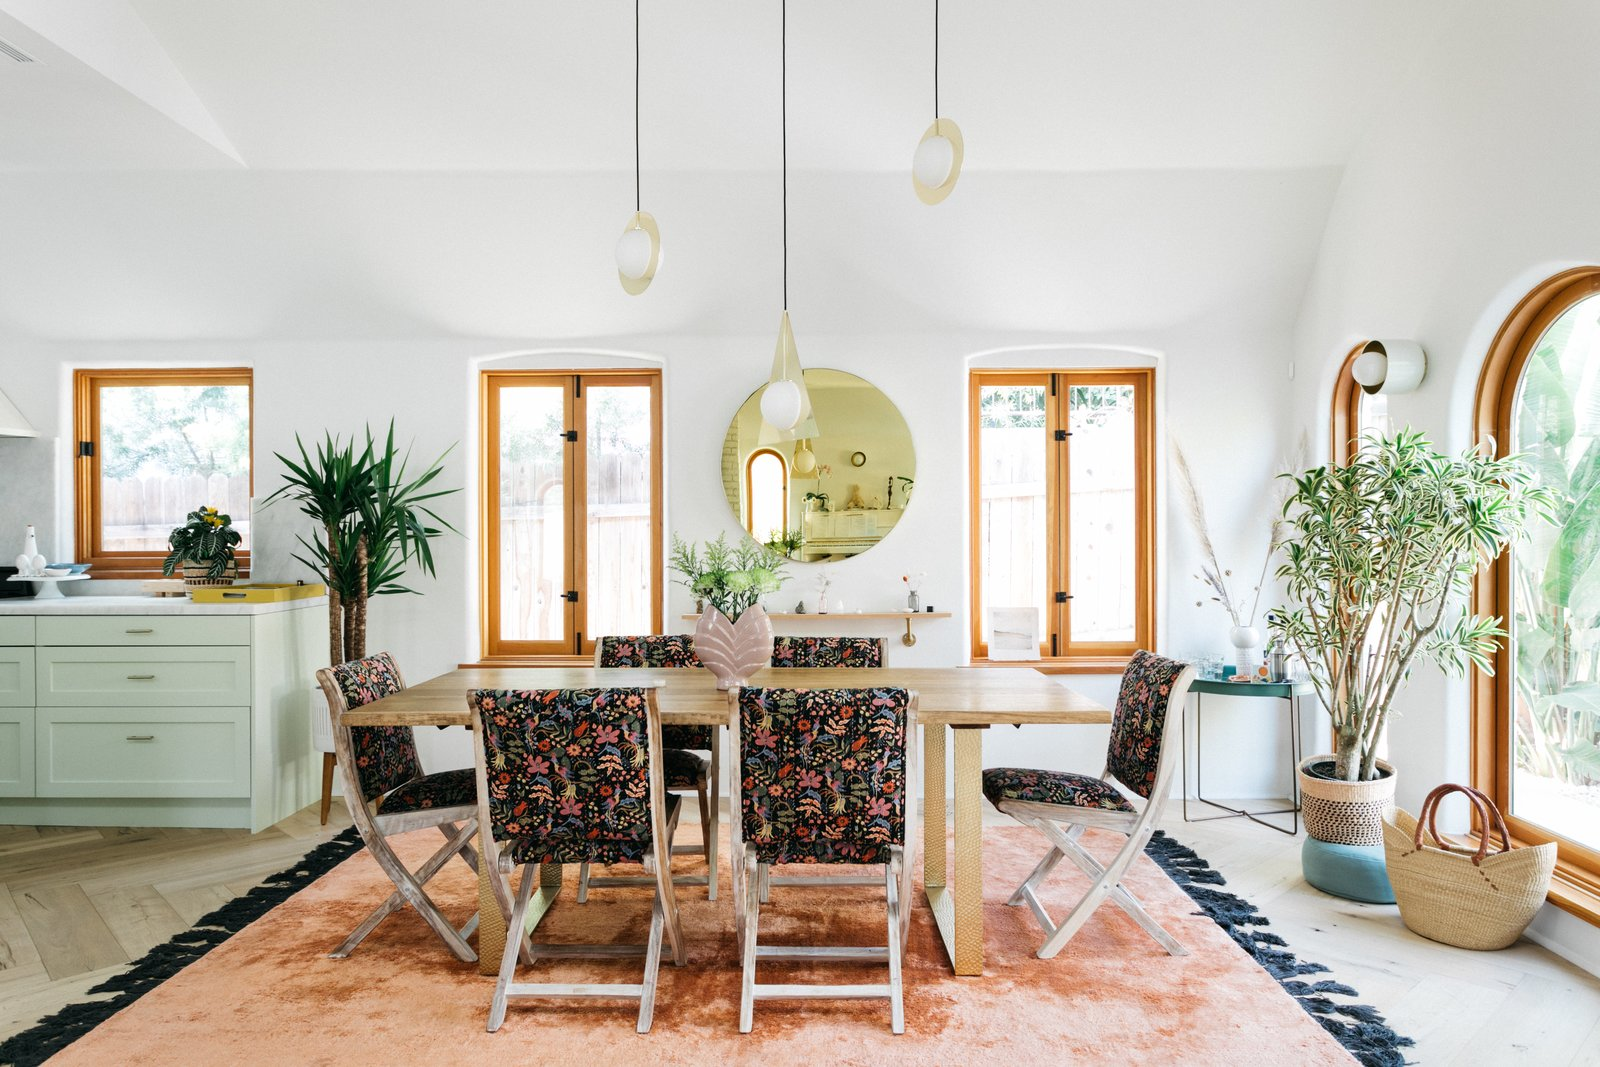 26 Floral Decor Ideas to Bring the Outdoors Into Your Home - Dwell